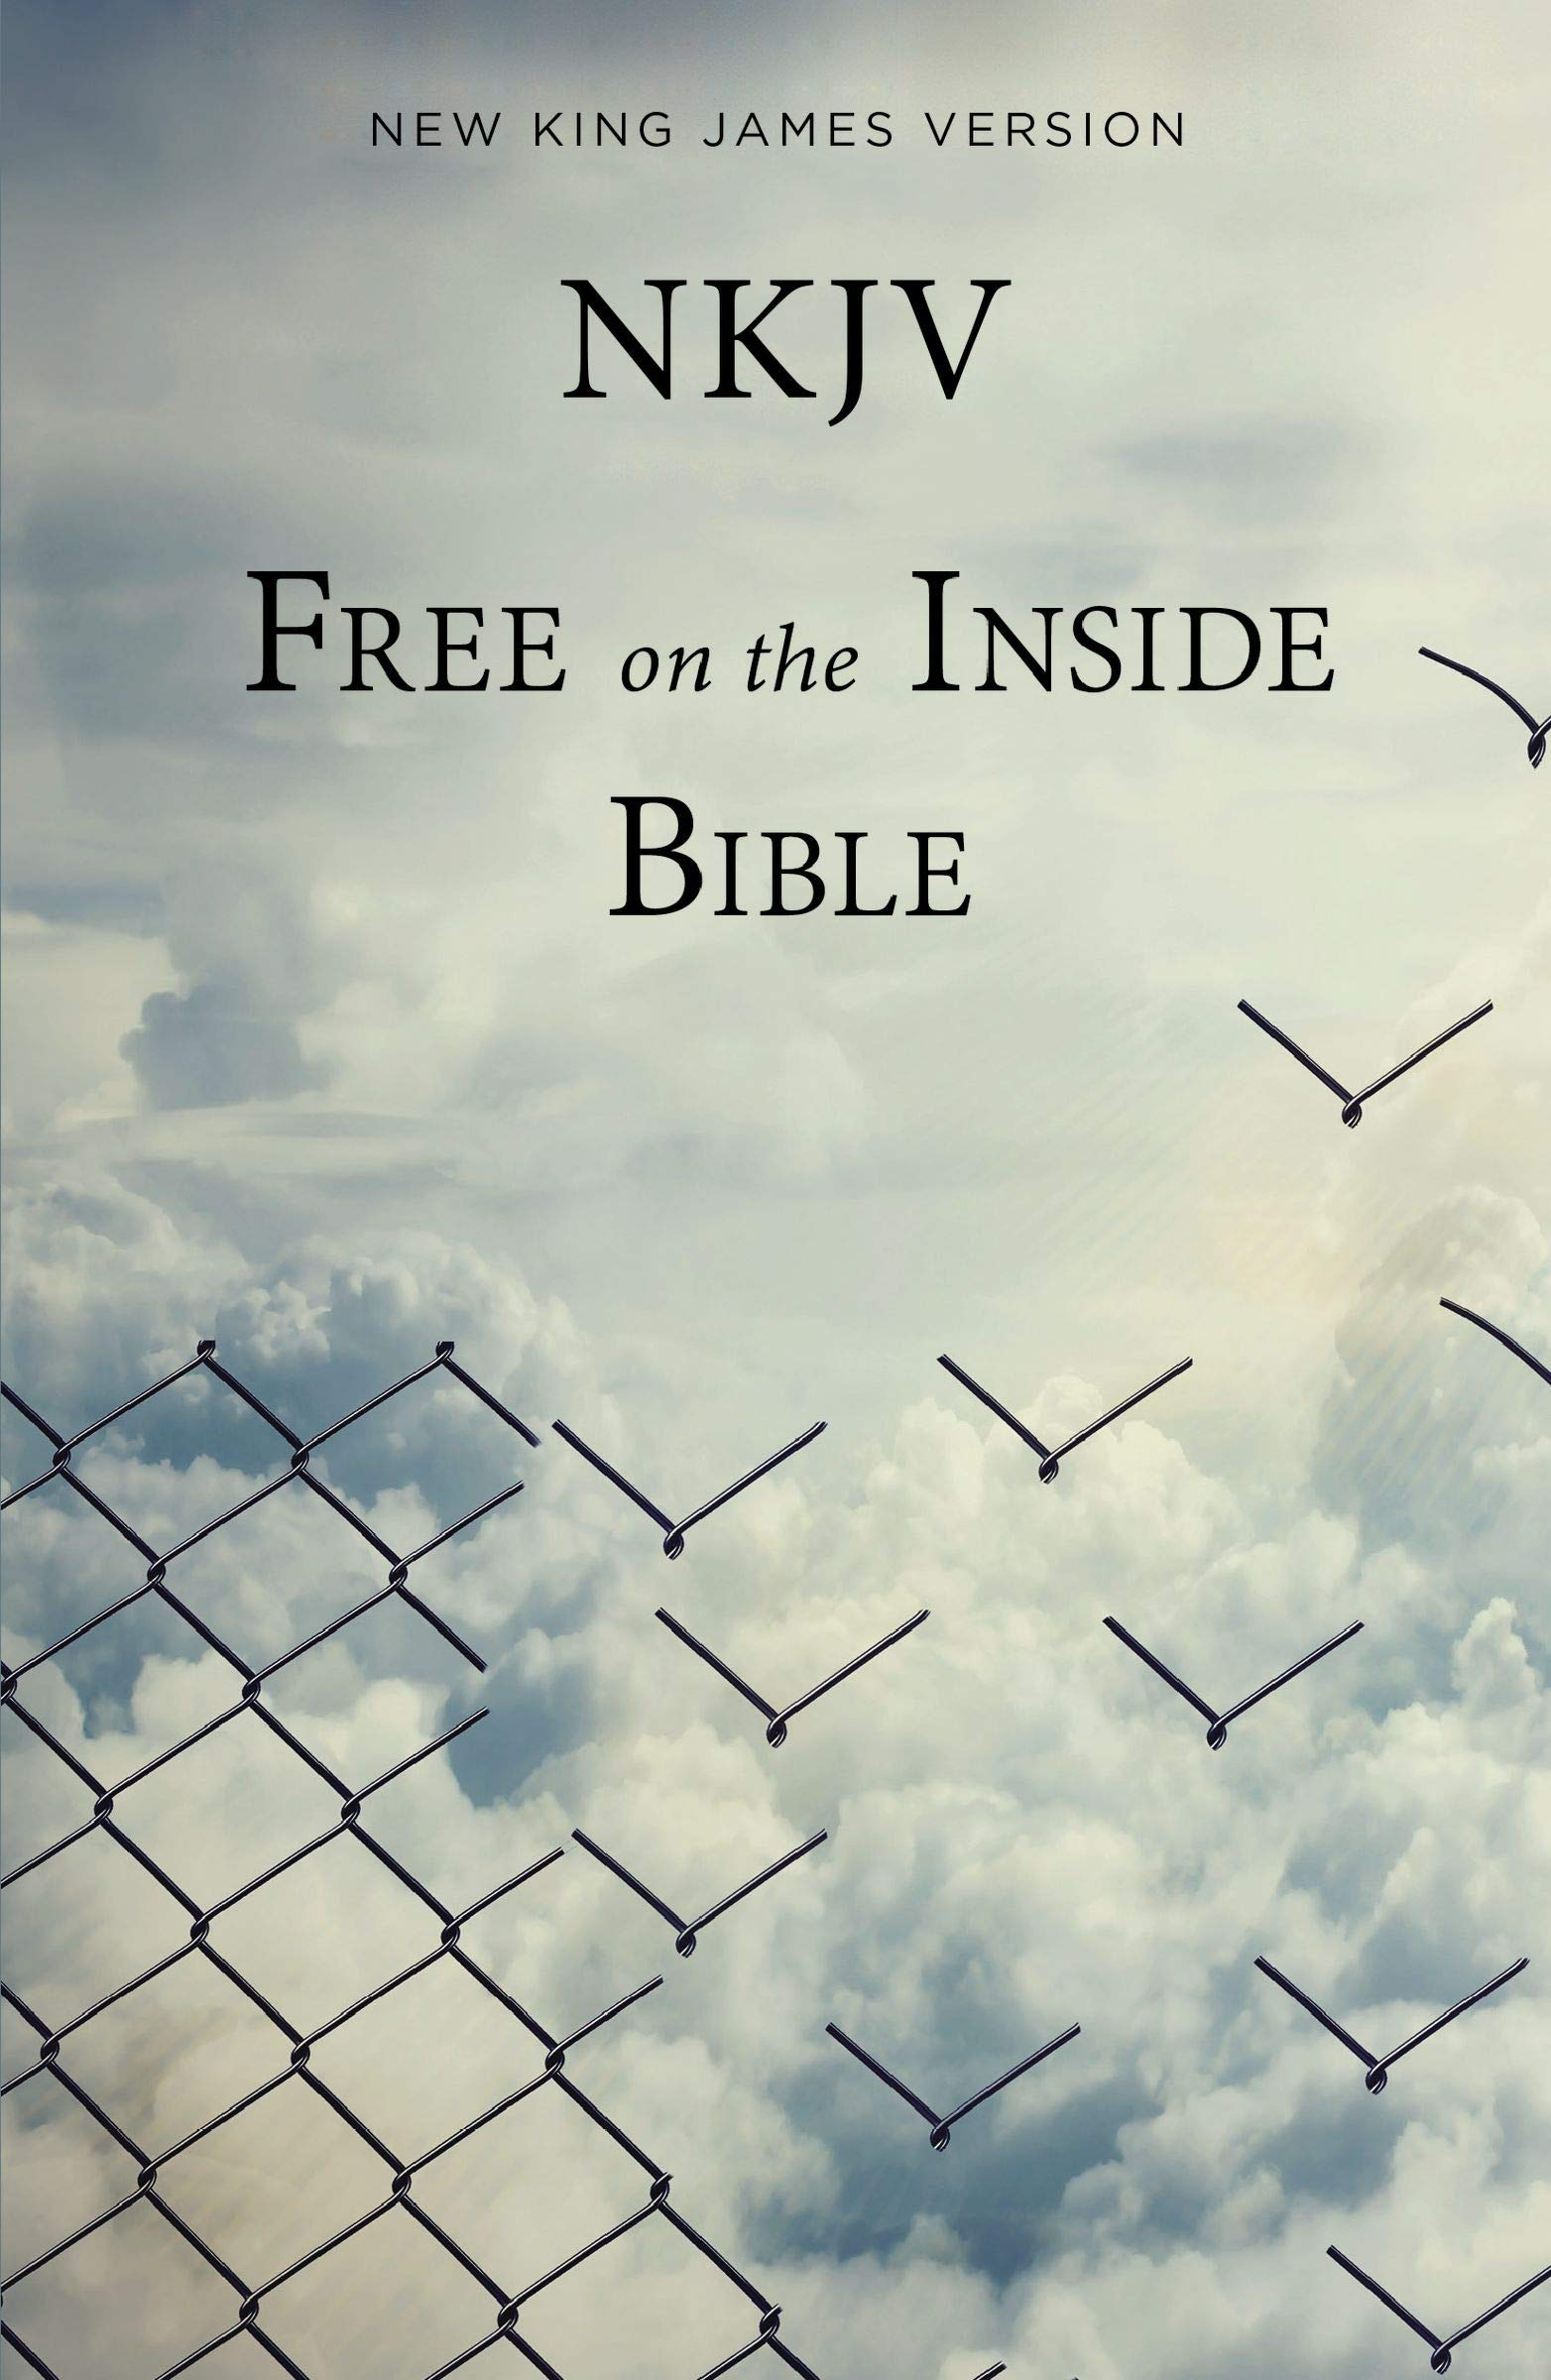 Ebook by Thomas Nelson - Nkjv, Free On The Inside Bible